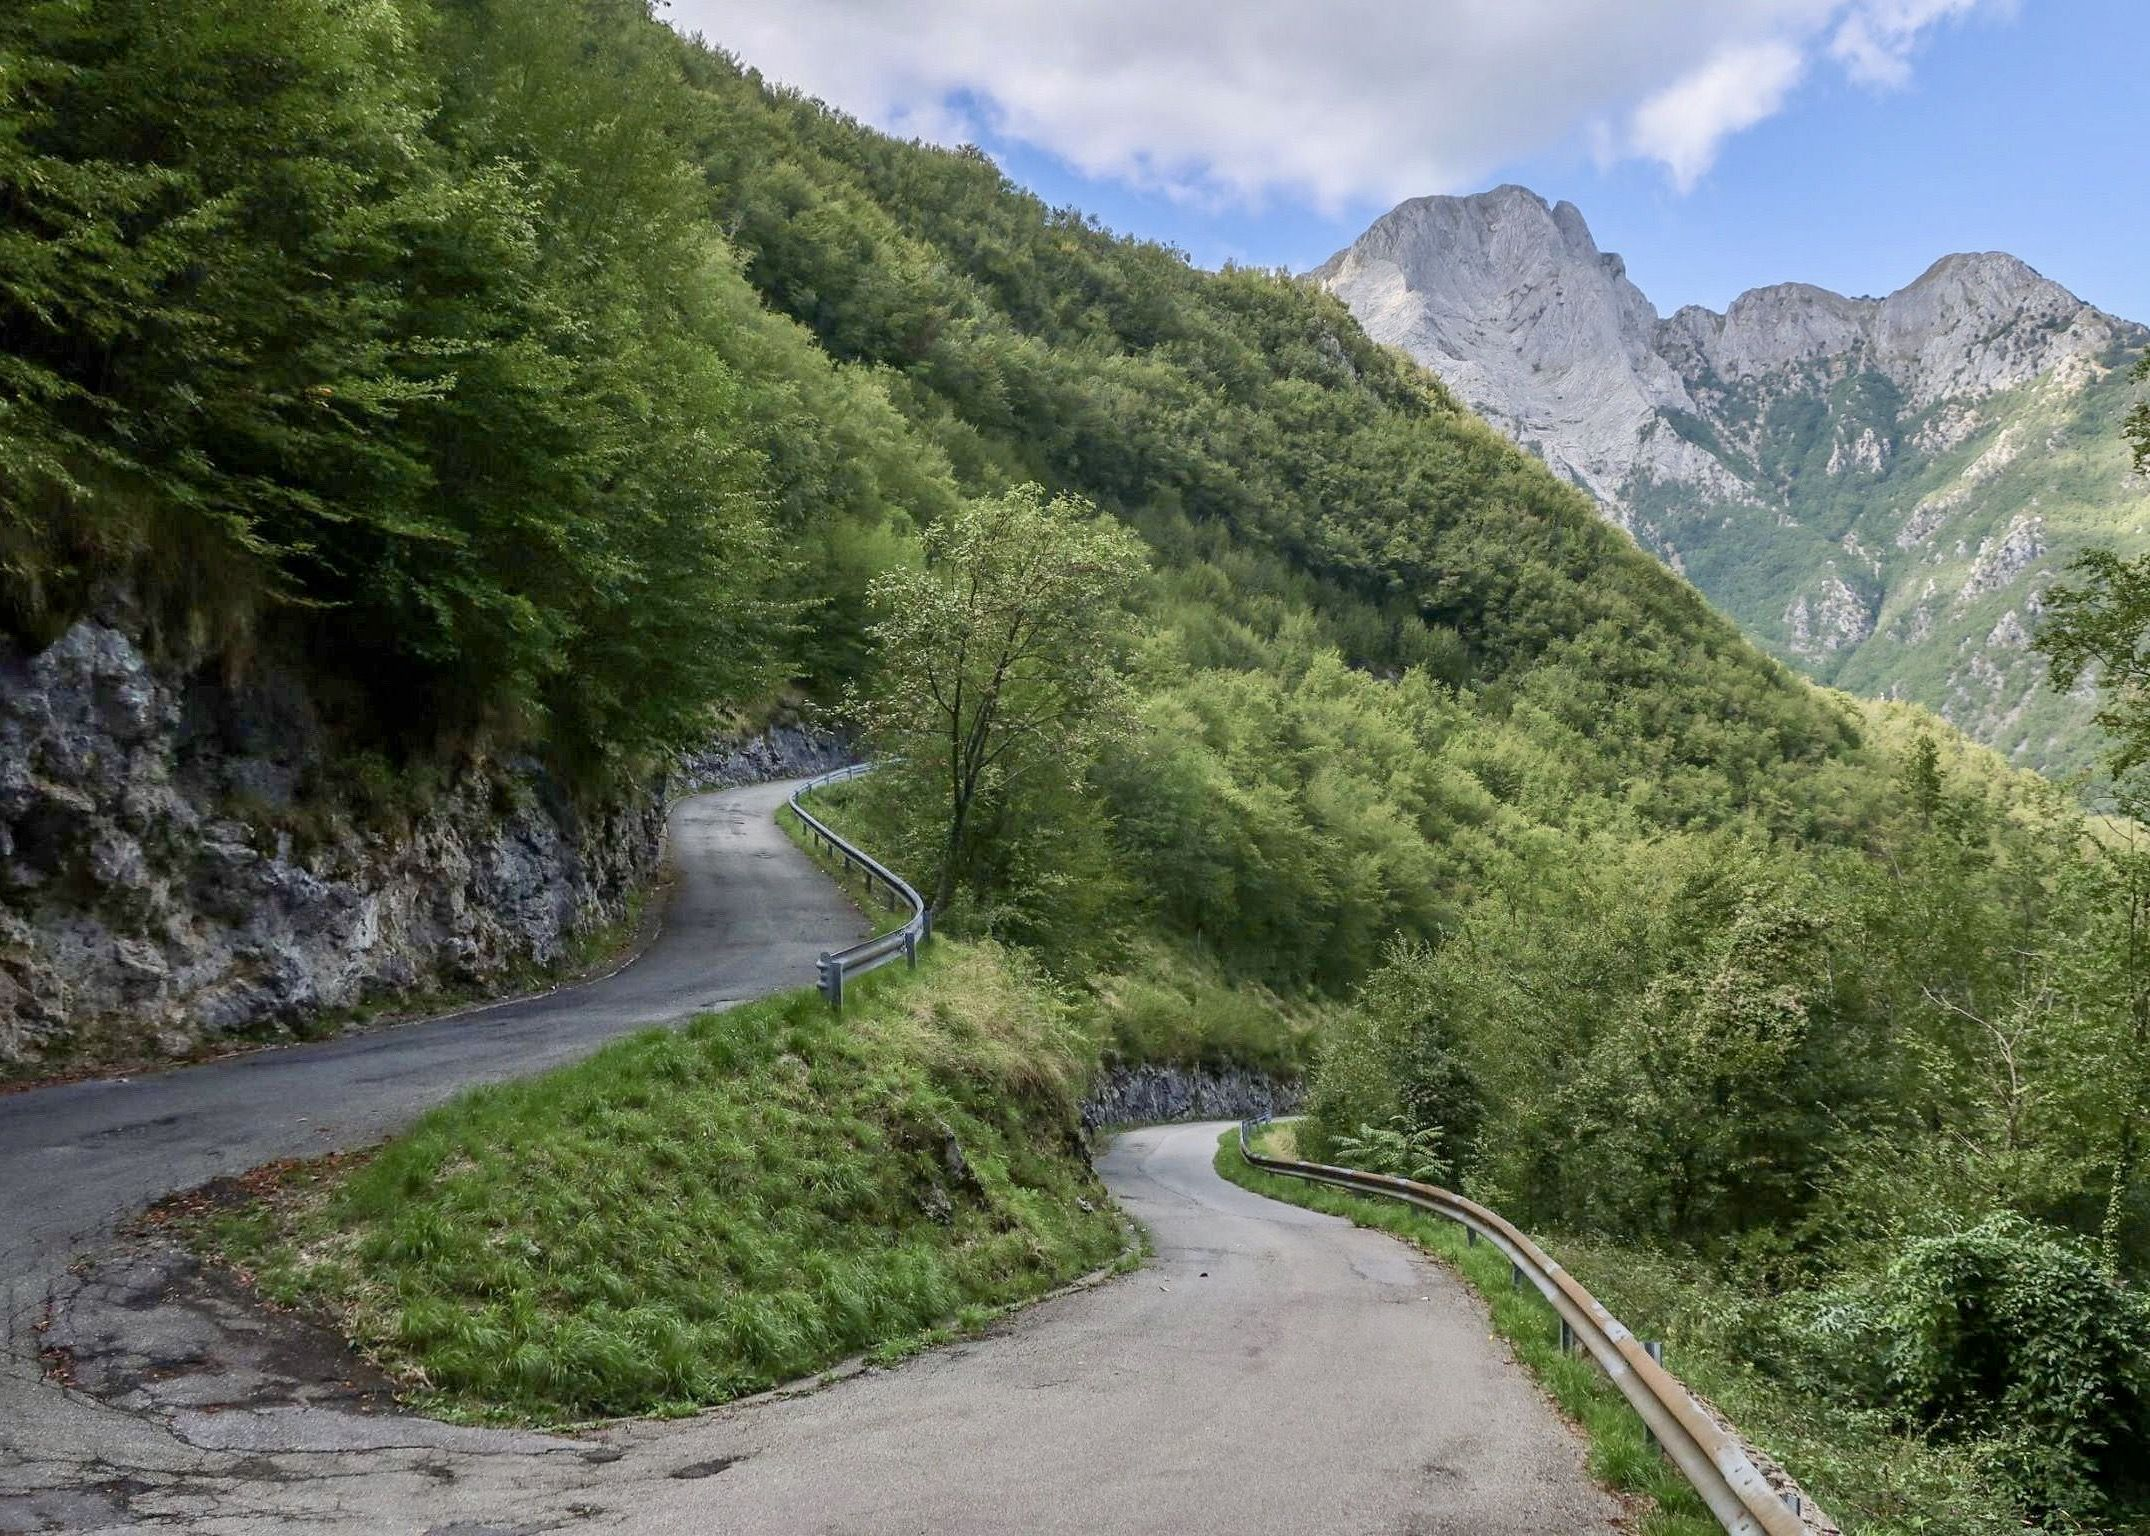 Hairpin switchback in the Apuan Alps